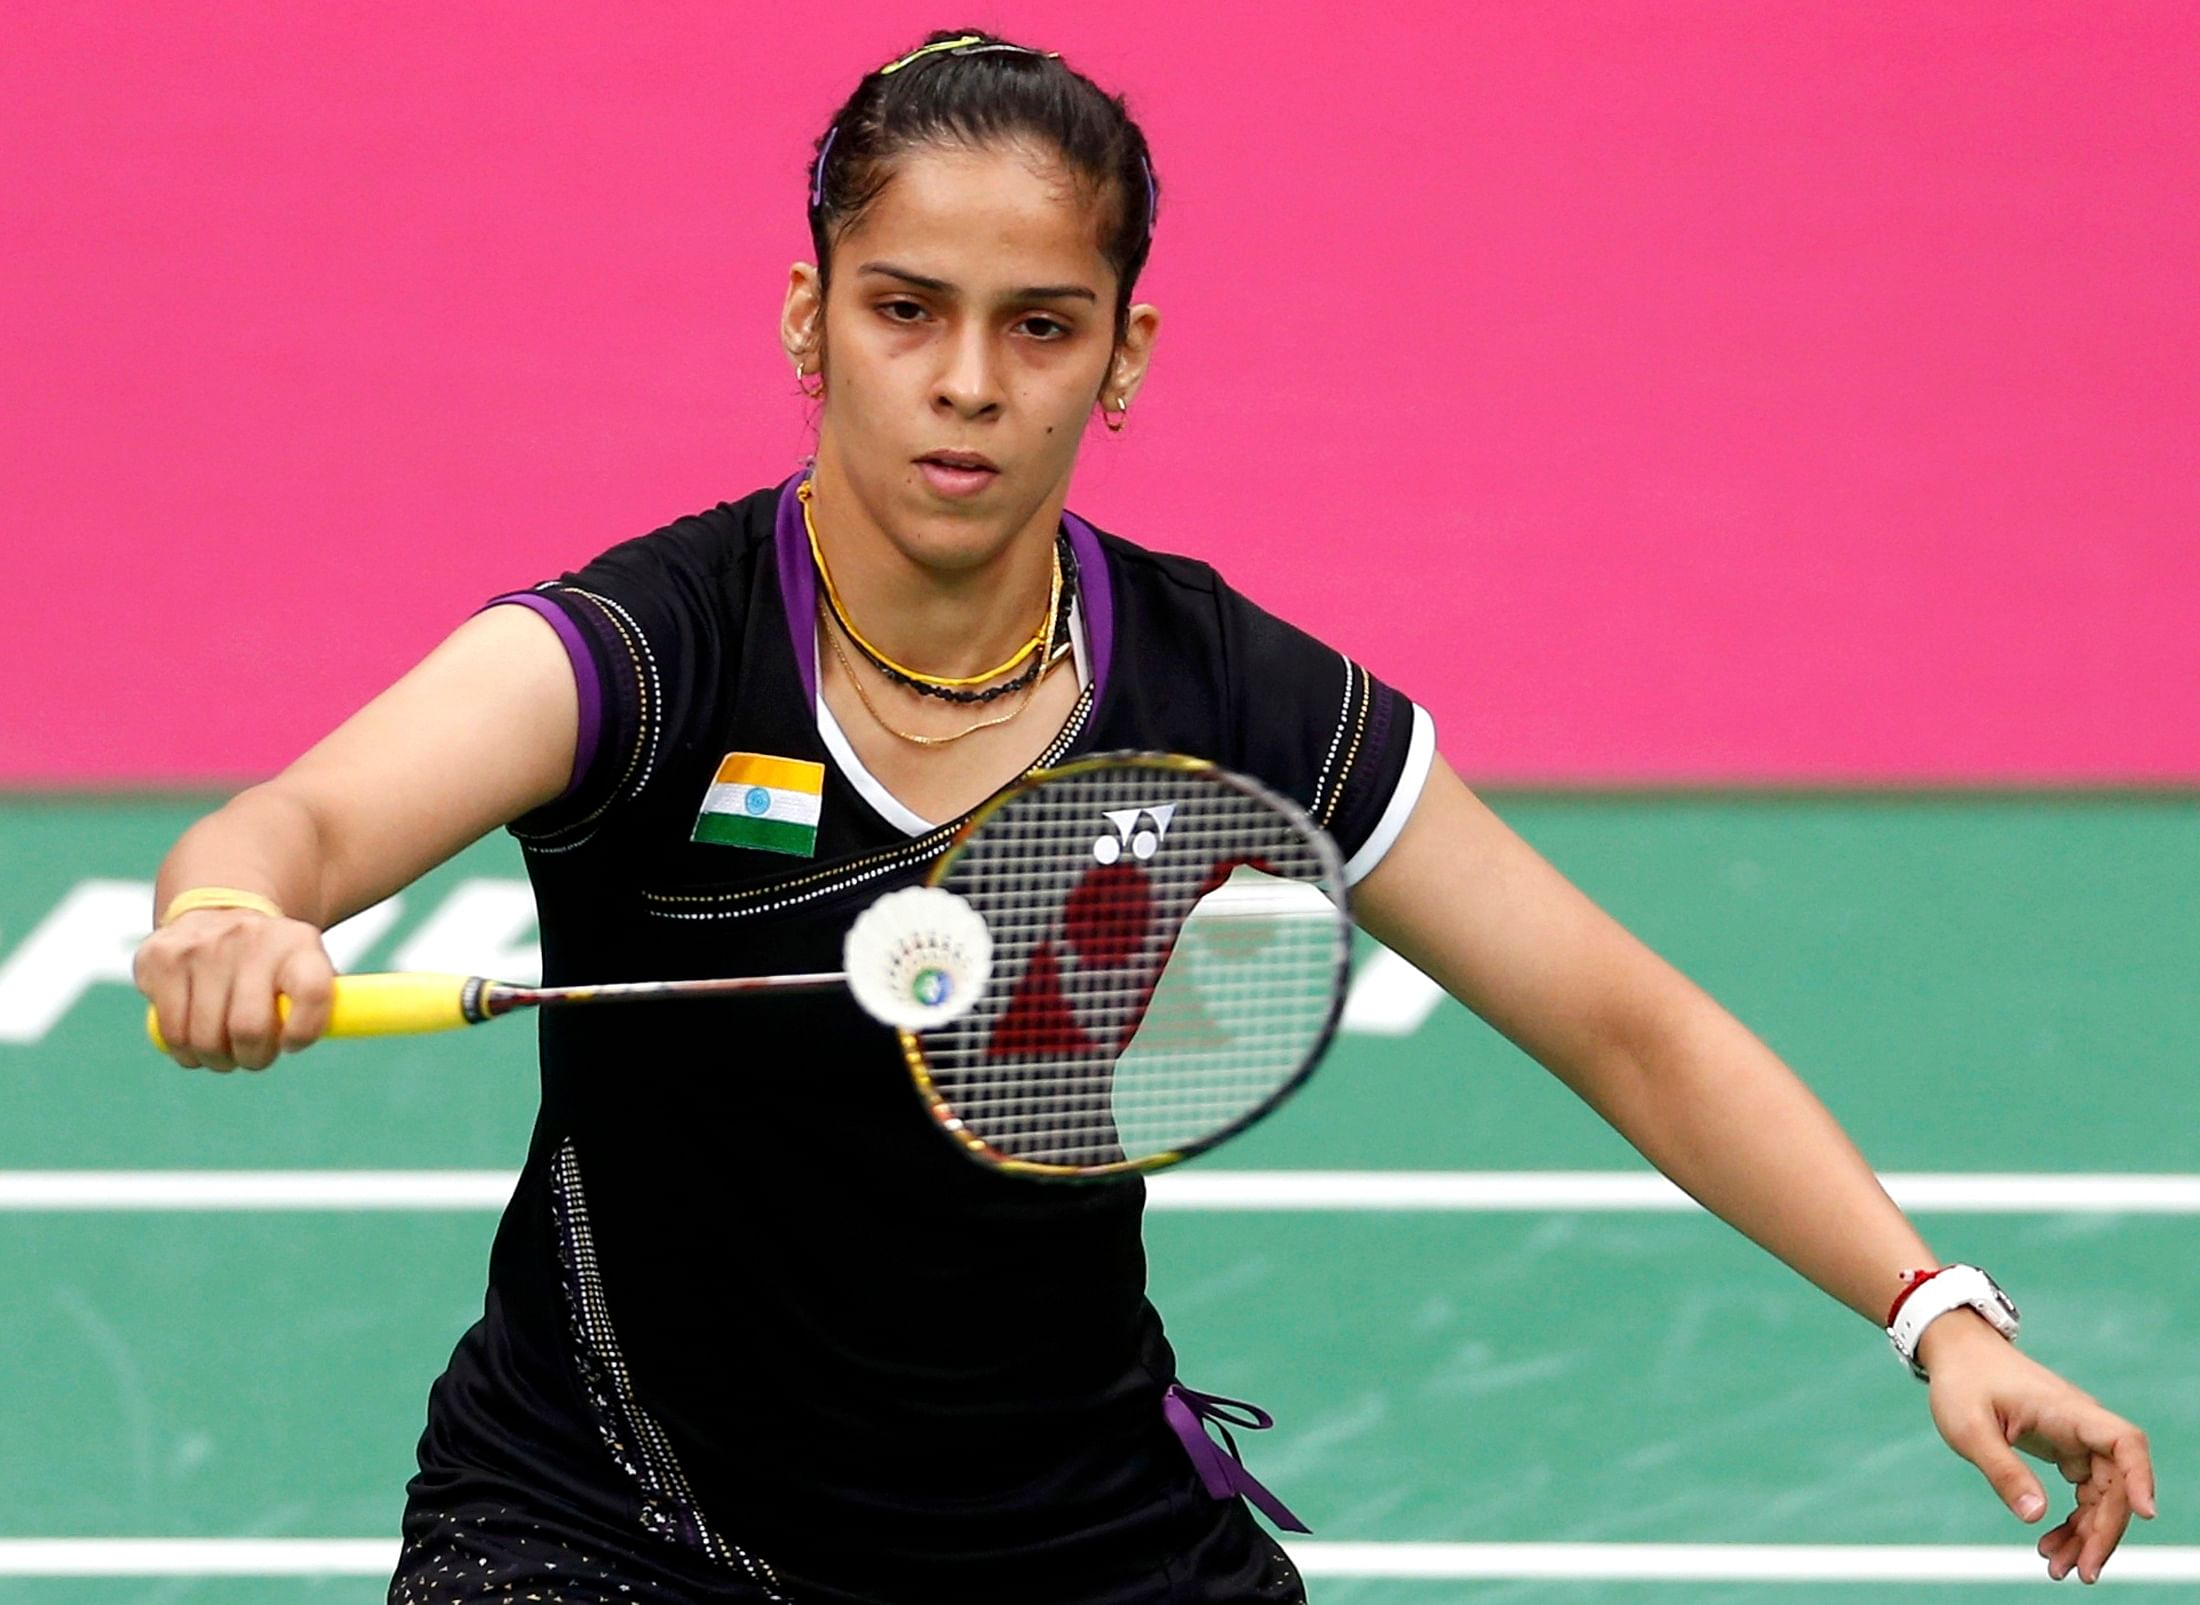 Saina Nehwal to lead Indian challenge at French Open